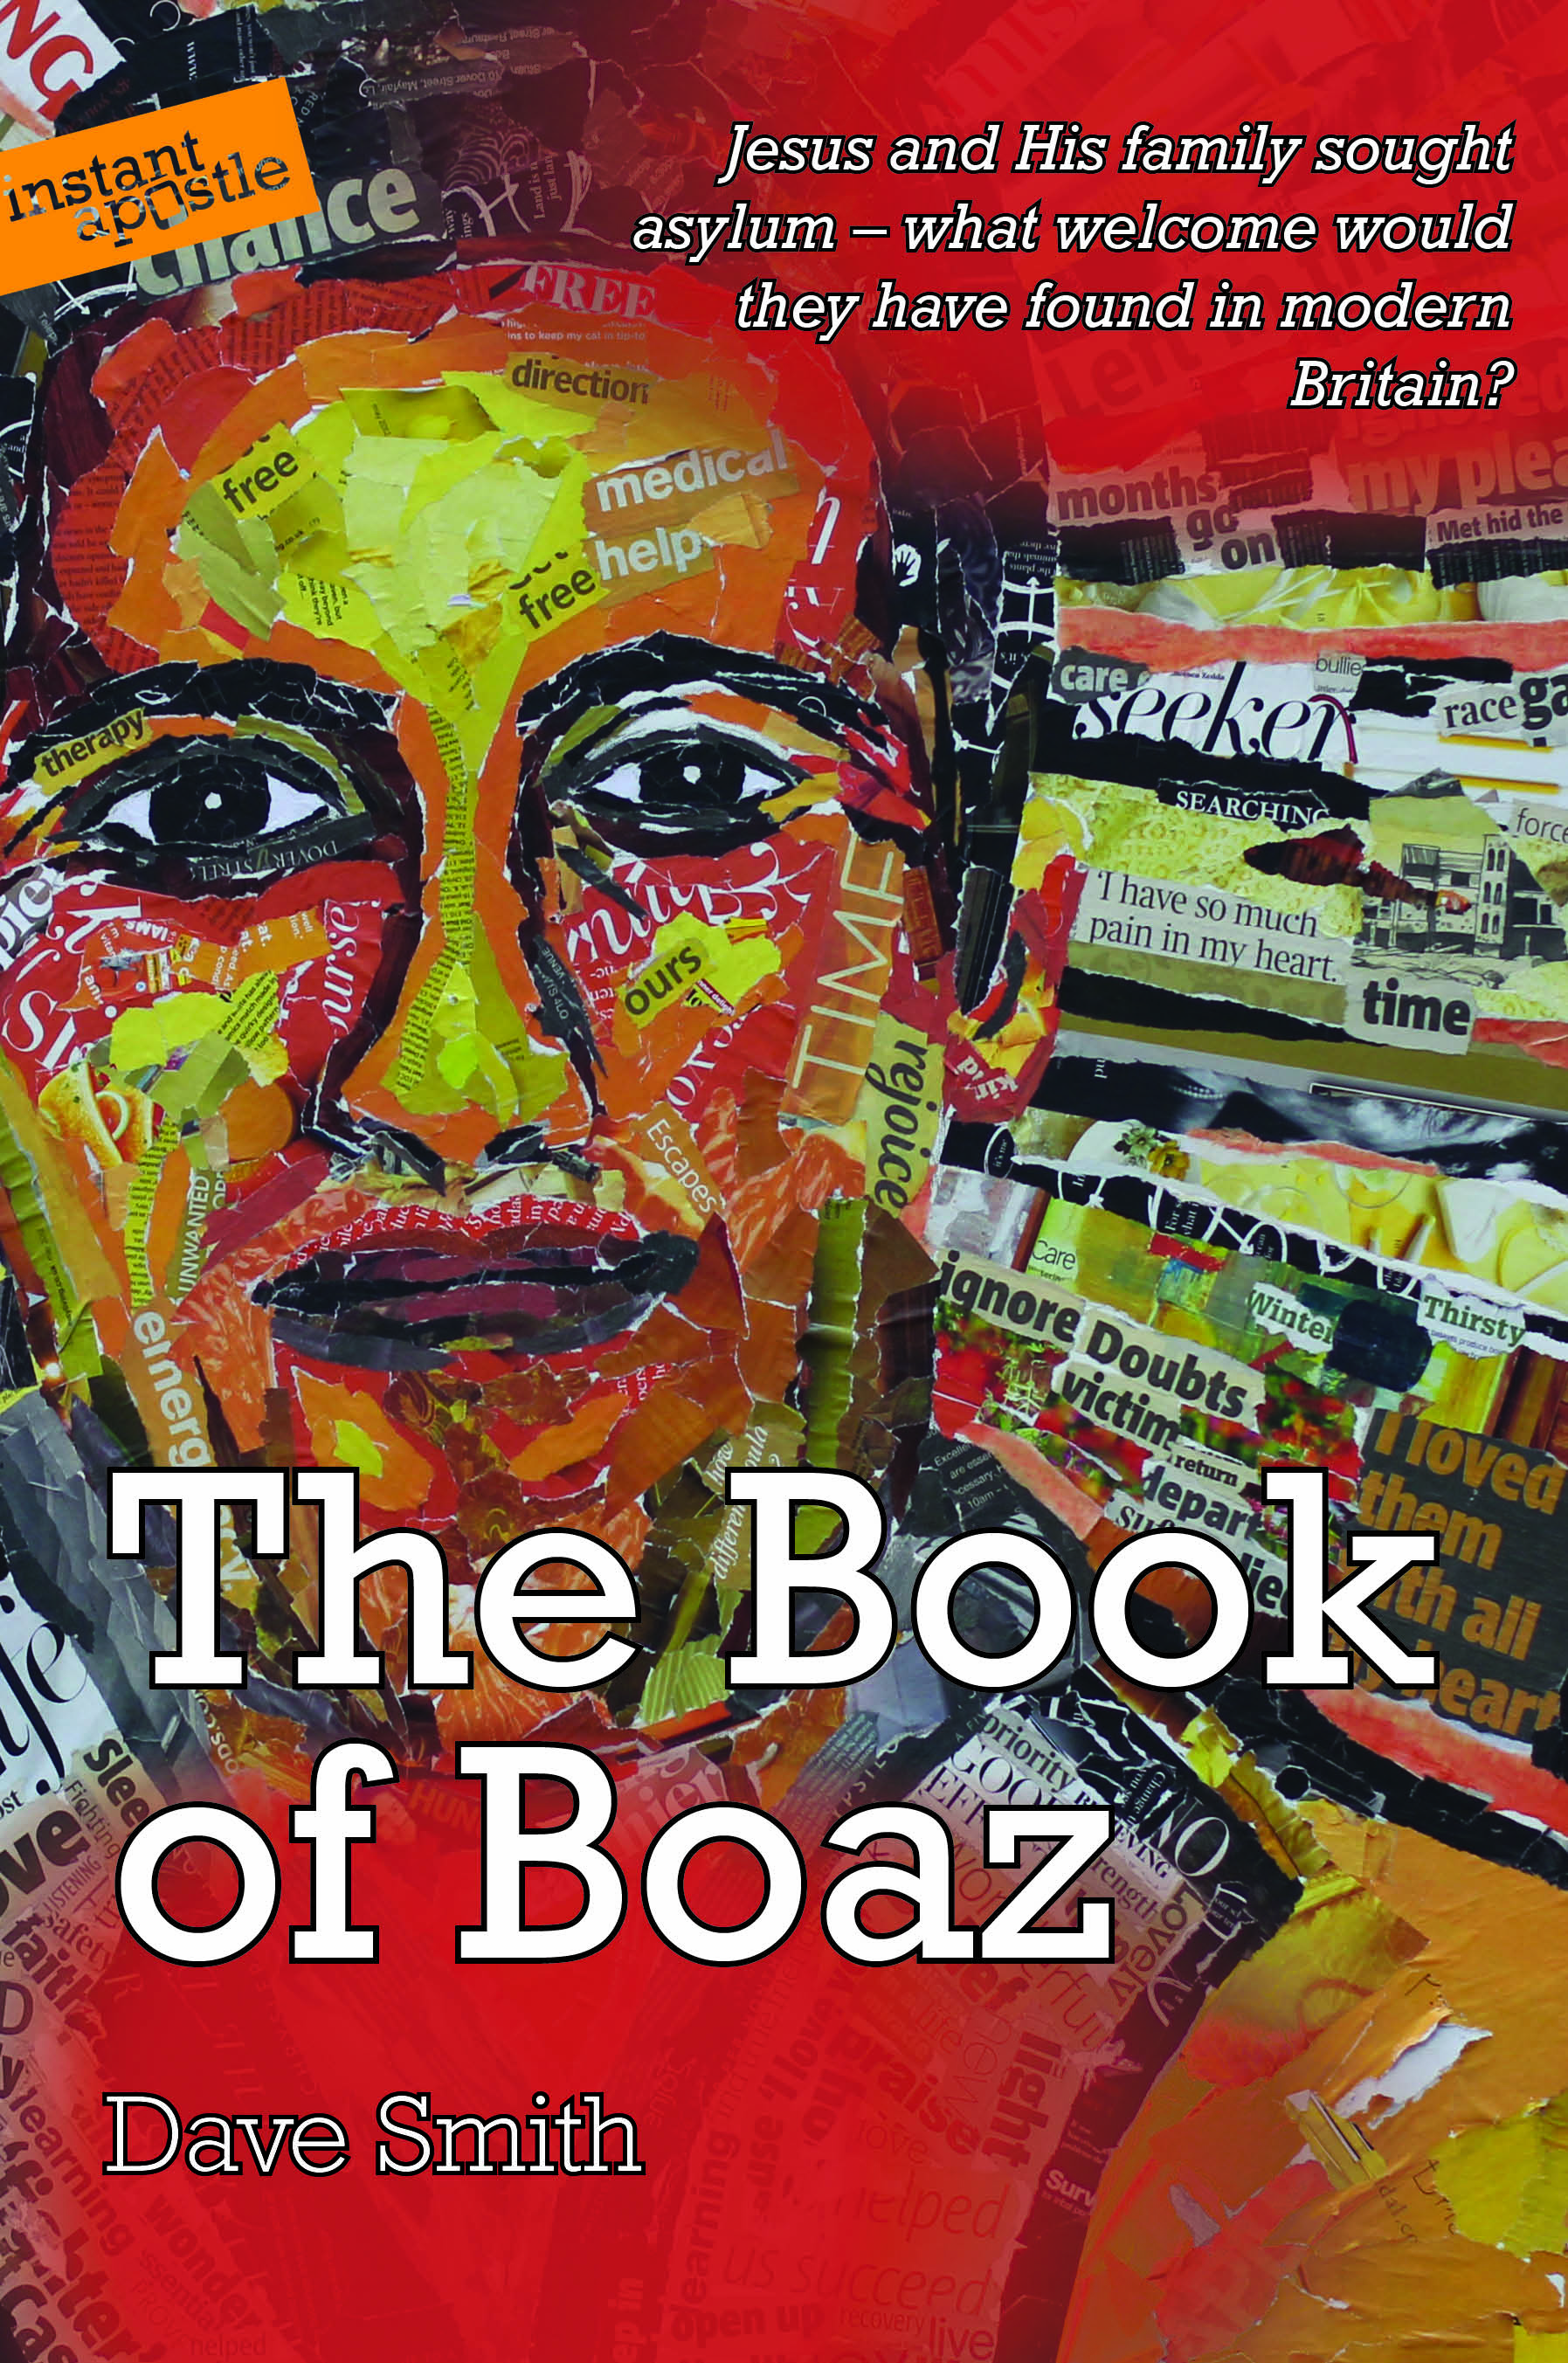 The Book of Boaz - This is the story of how Dave Smith established the Boaz Trust, a charity for destitute asylum seekers in Manchester. The book is also an exploration of the British asylum system and what we can do to welcome people.